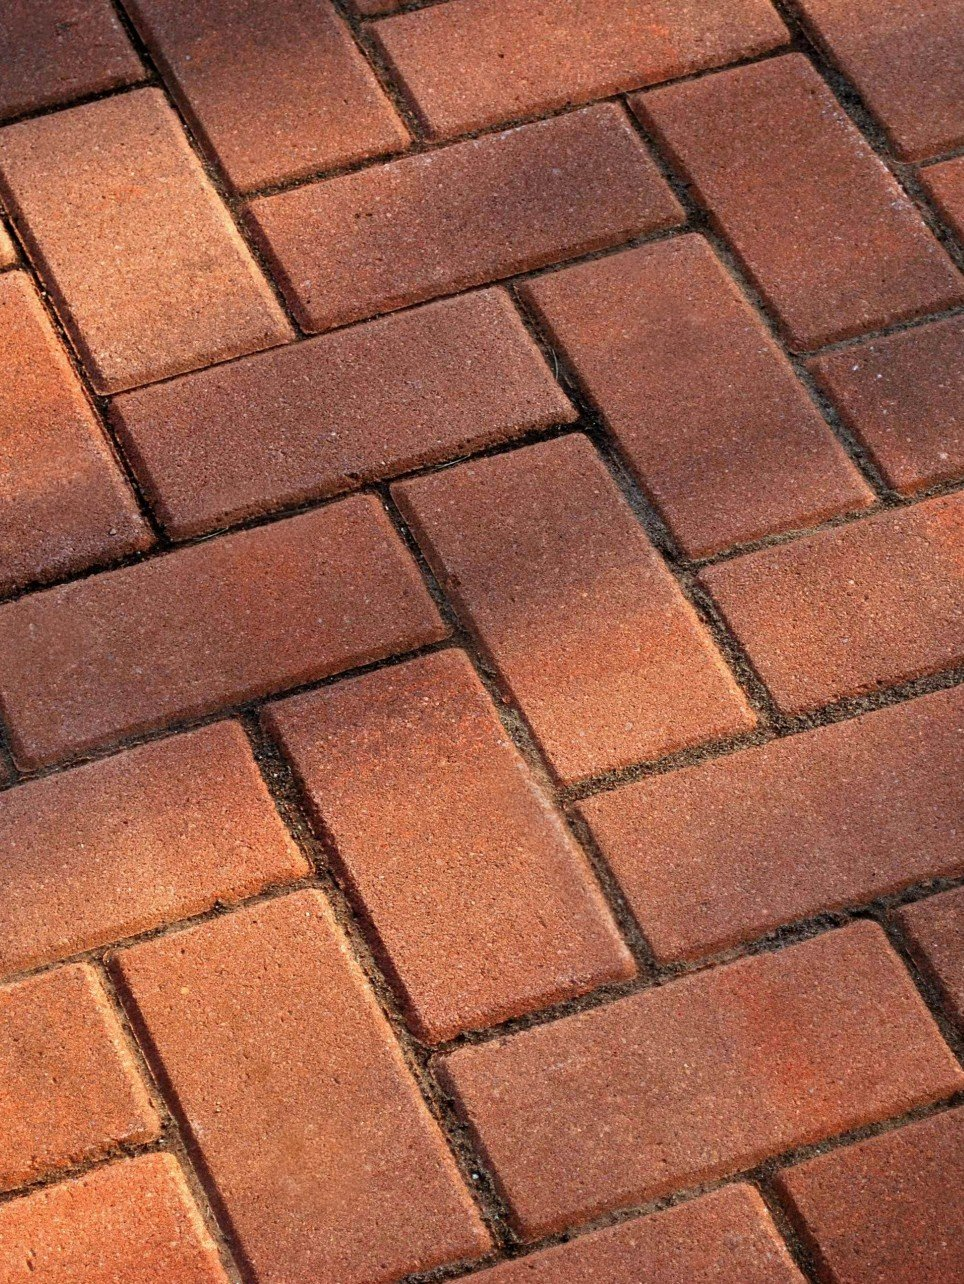 Block Paving Companies Abbeymead